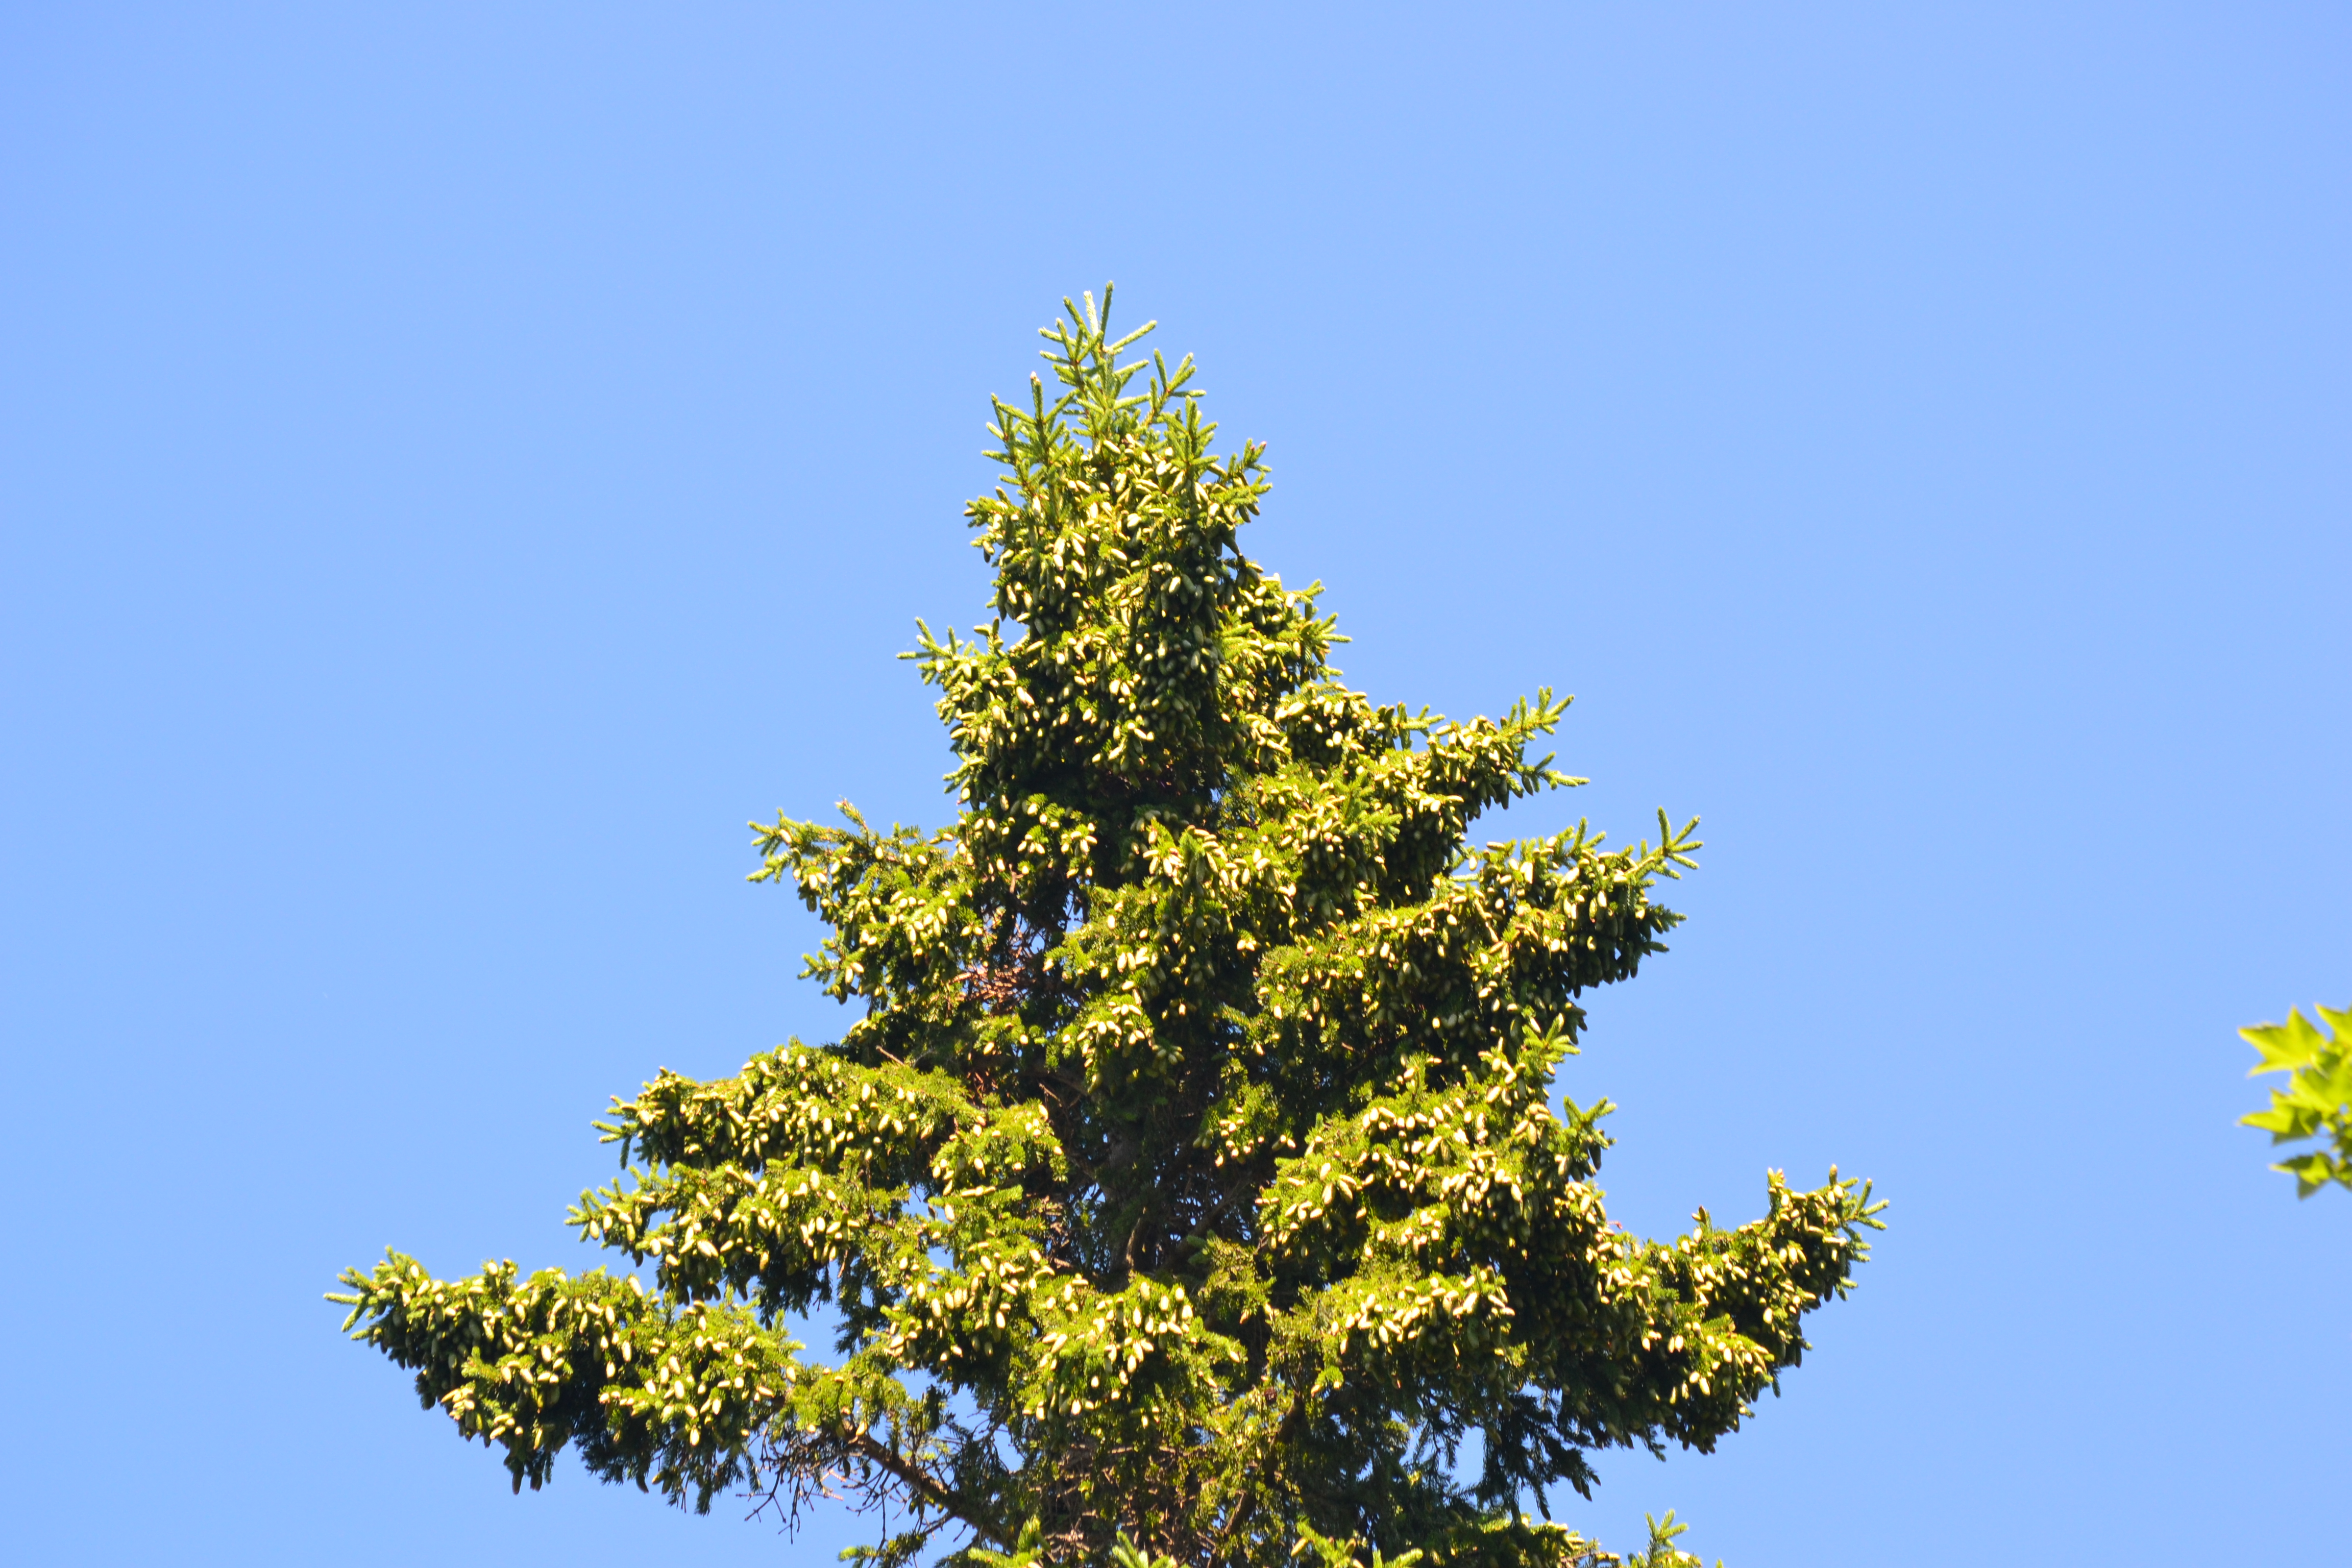 Masting in white spruce begins with a heavy crop of green cones that turn brown later in the year. Photo by Jalene LaMontagne.